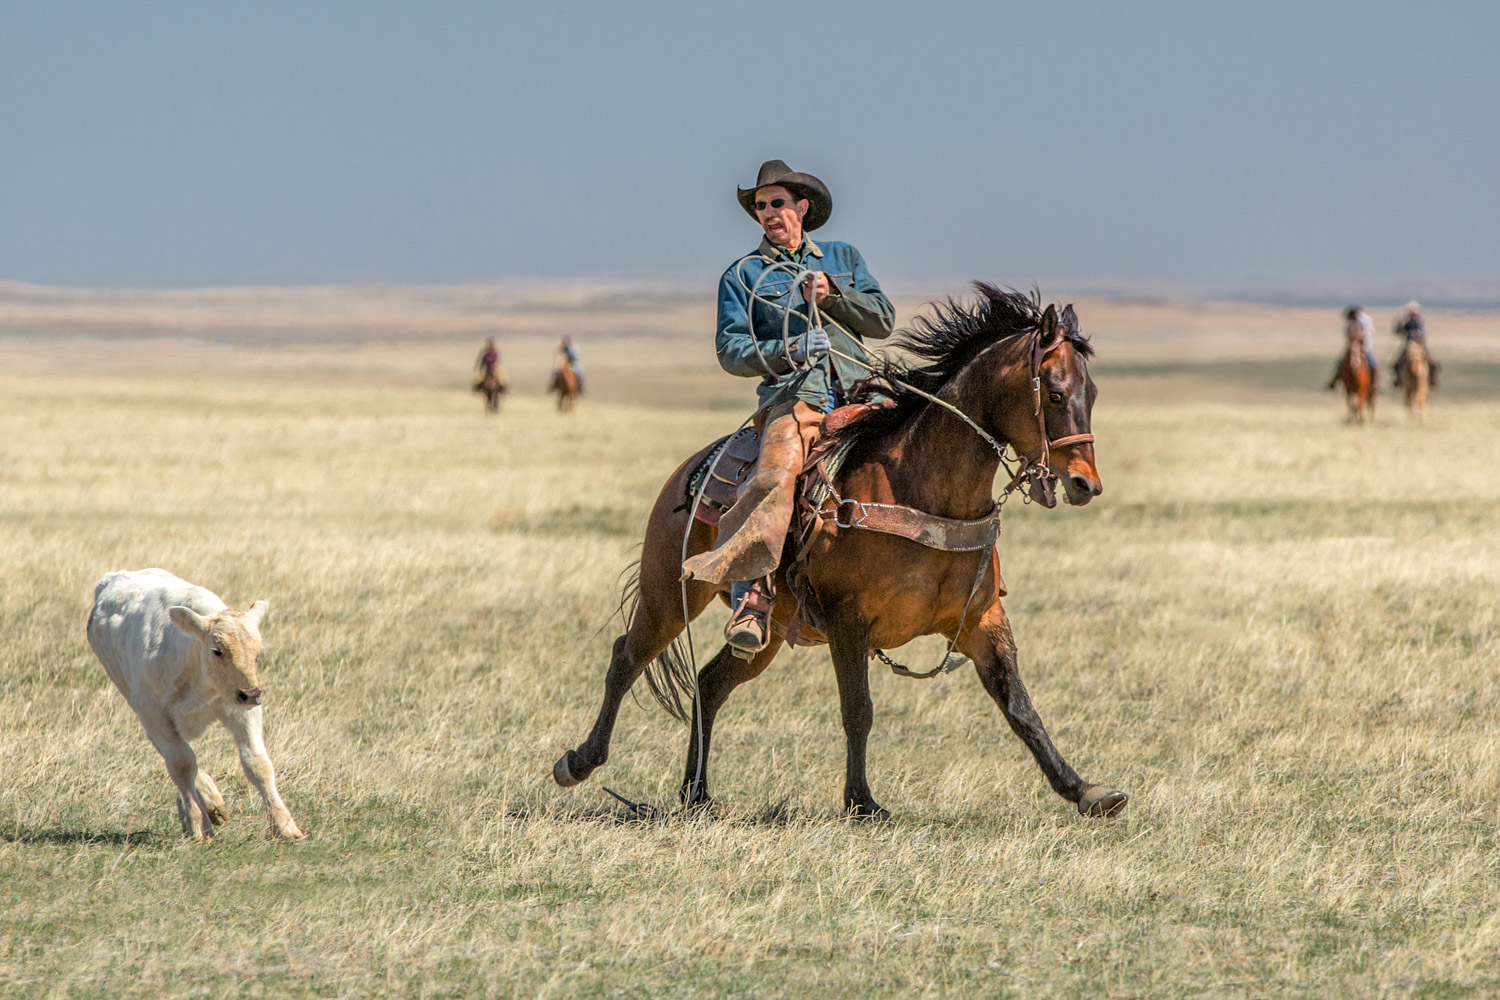 Cowboy-and-Horse-Coming-to-an-Abrupt-Stop.jpg